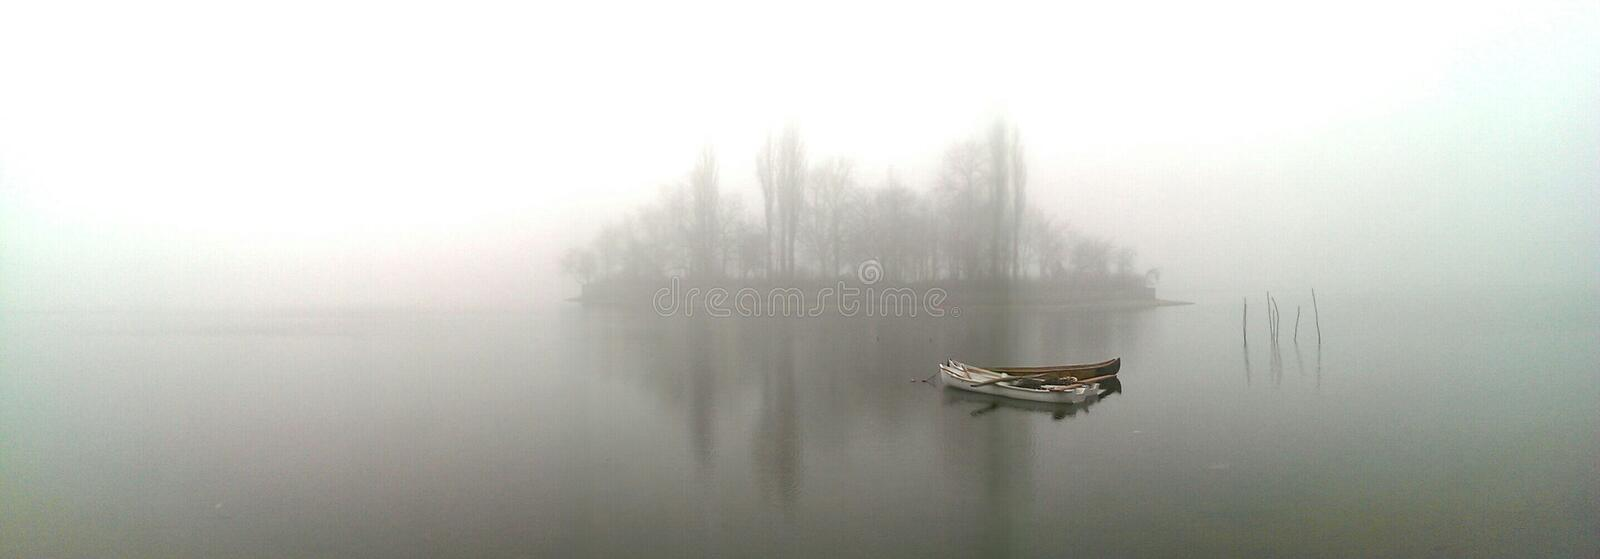 Download Boat on misty lake stock image. Image of romania, panorama - 36944601